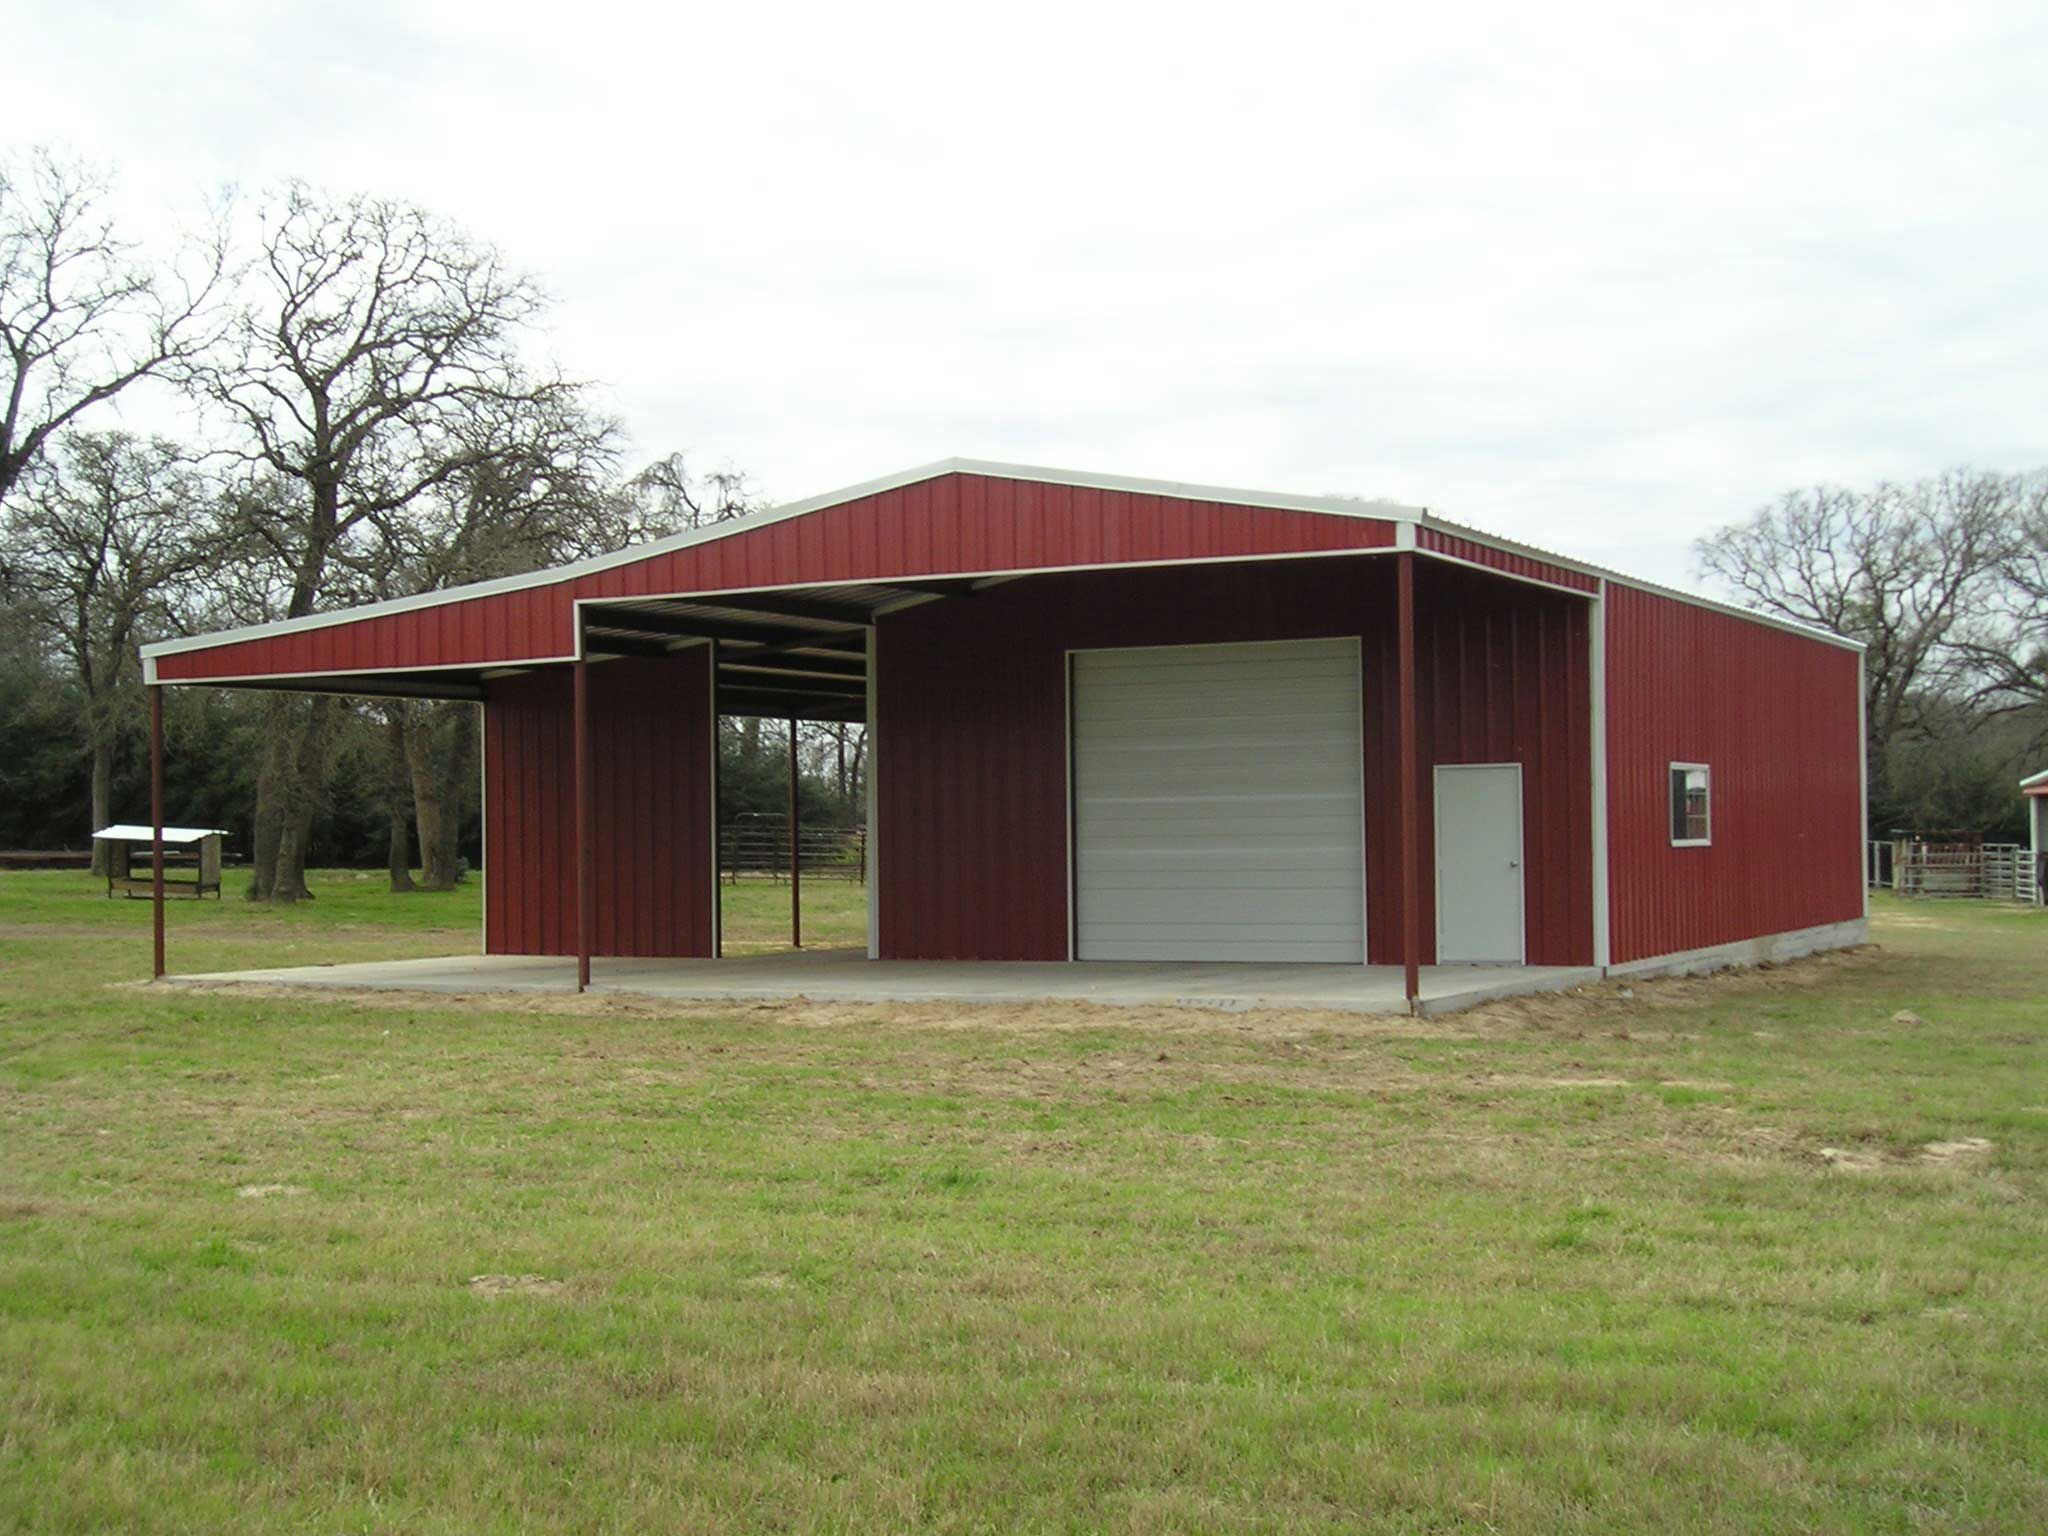 Metal Shed Homes perfect combo metal building home metal barn building 12 pictures metal building homes barndominium pinterest metals large canvas and pictures Metalbuildingideas Design Ideas Metal Buildings 2048x1536 B N B Buildings Metal Buildings